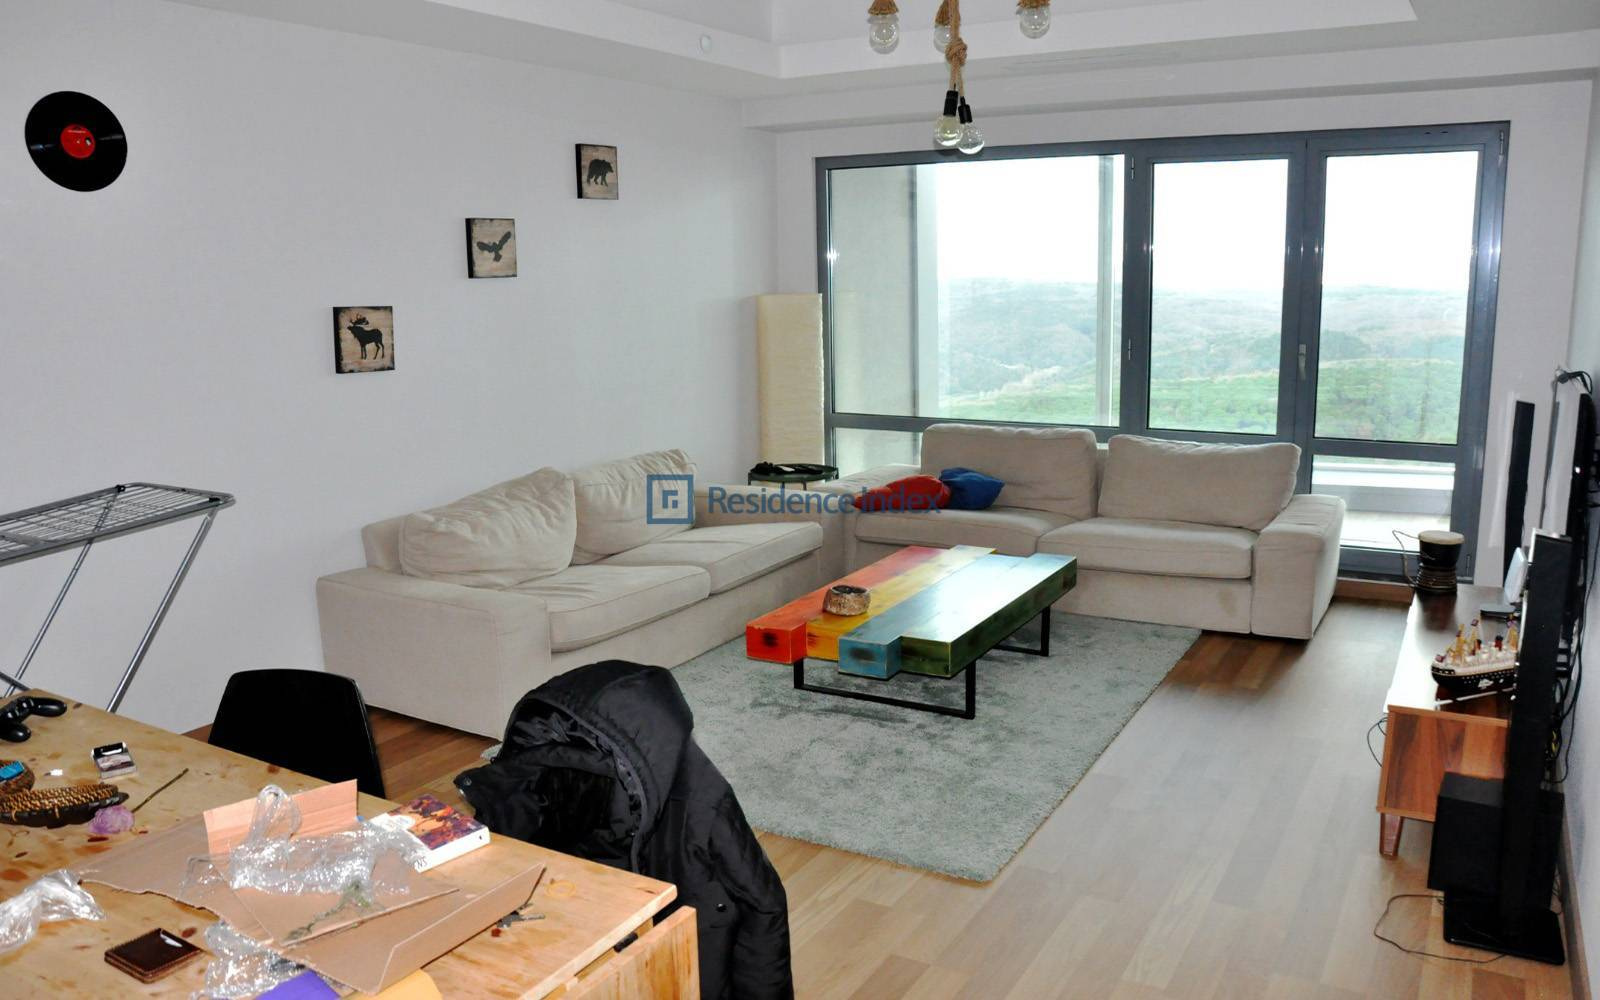 1453 Maslak - It is appropriatefor Citizenship 2 + 1 apartment for sale in Maslak